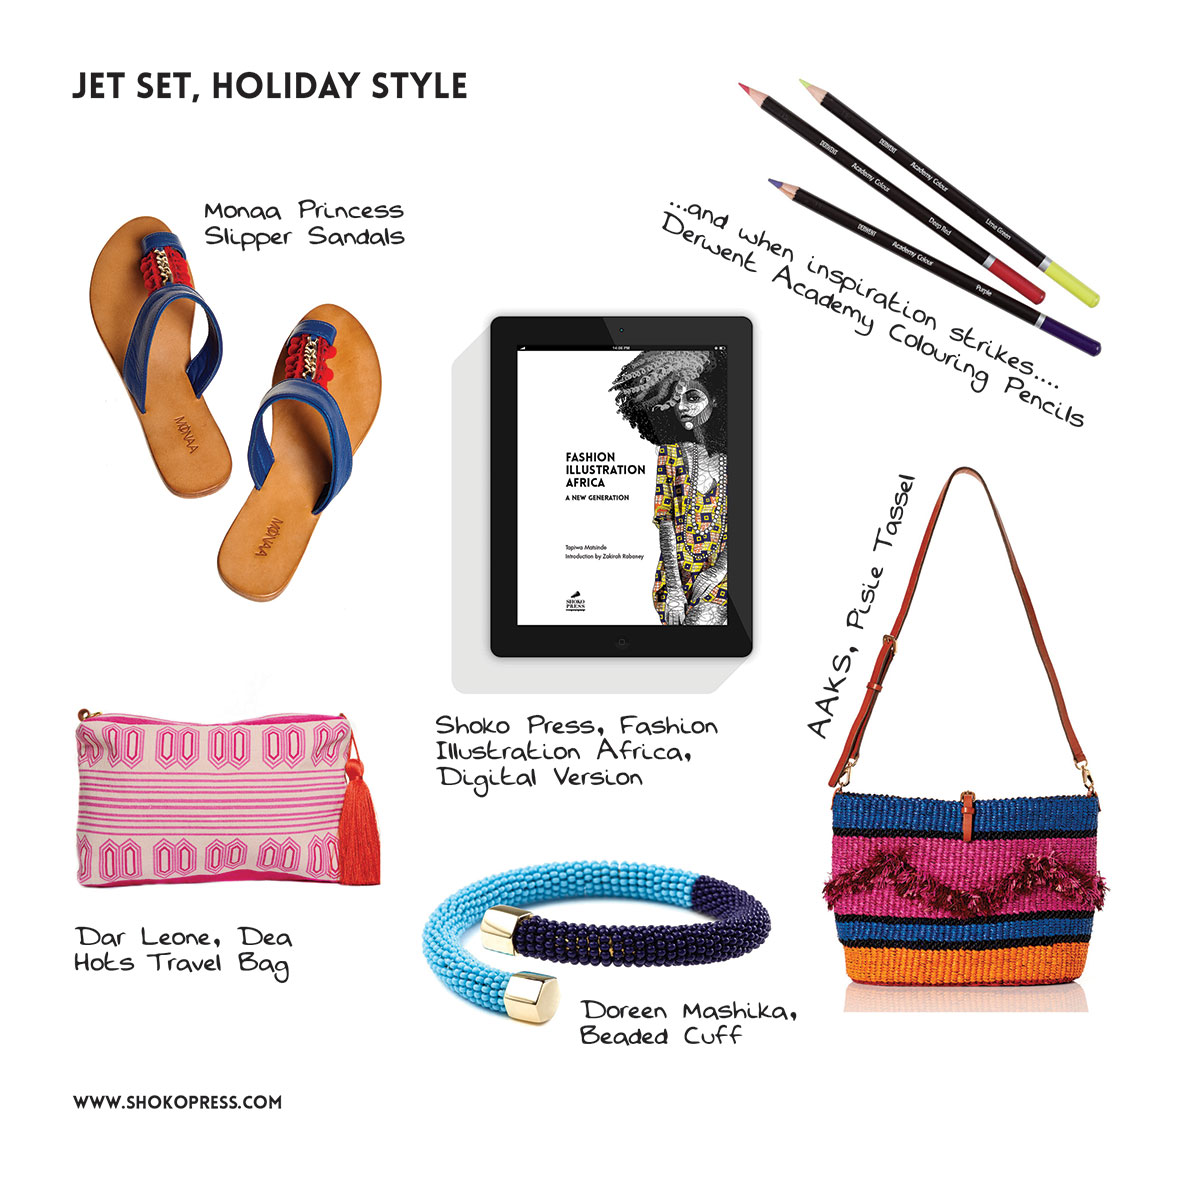 Shoko Press What to Pack for Holiday